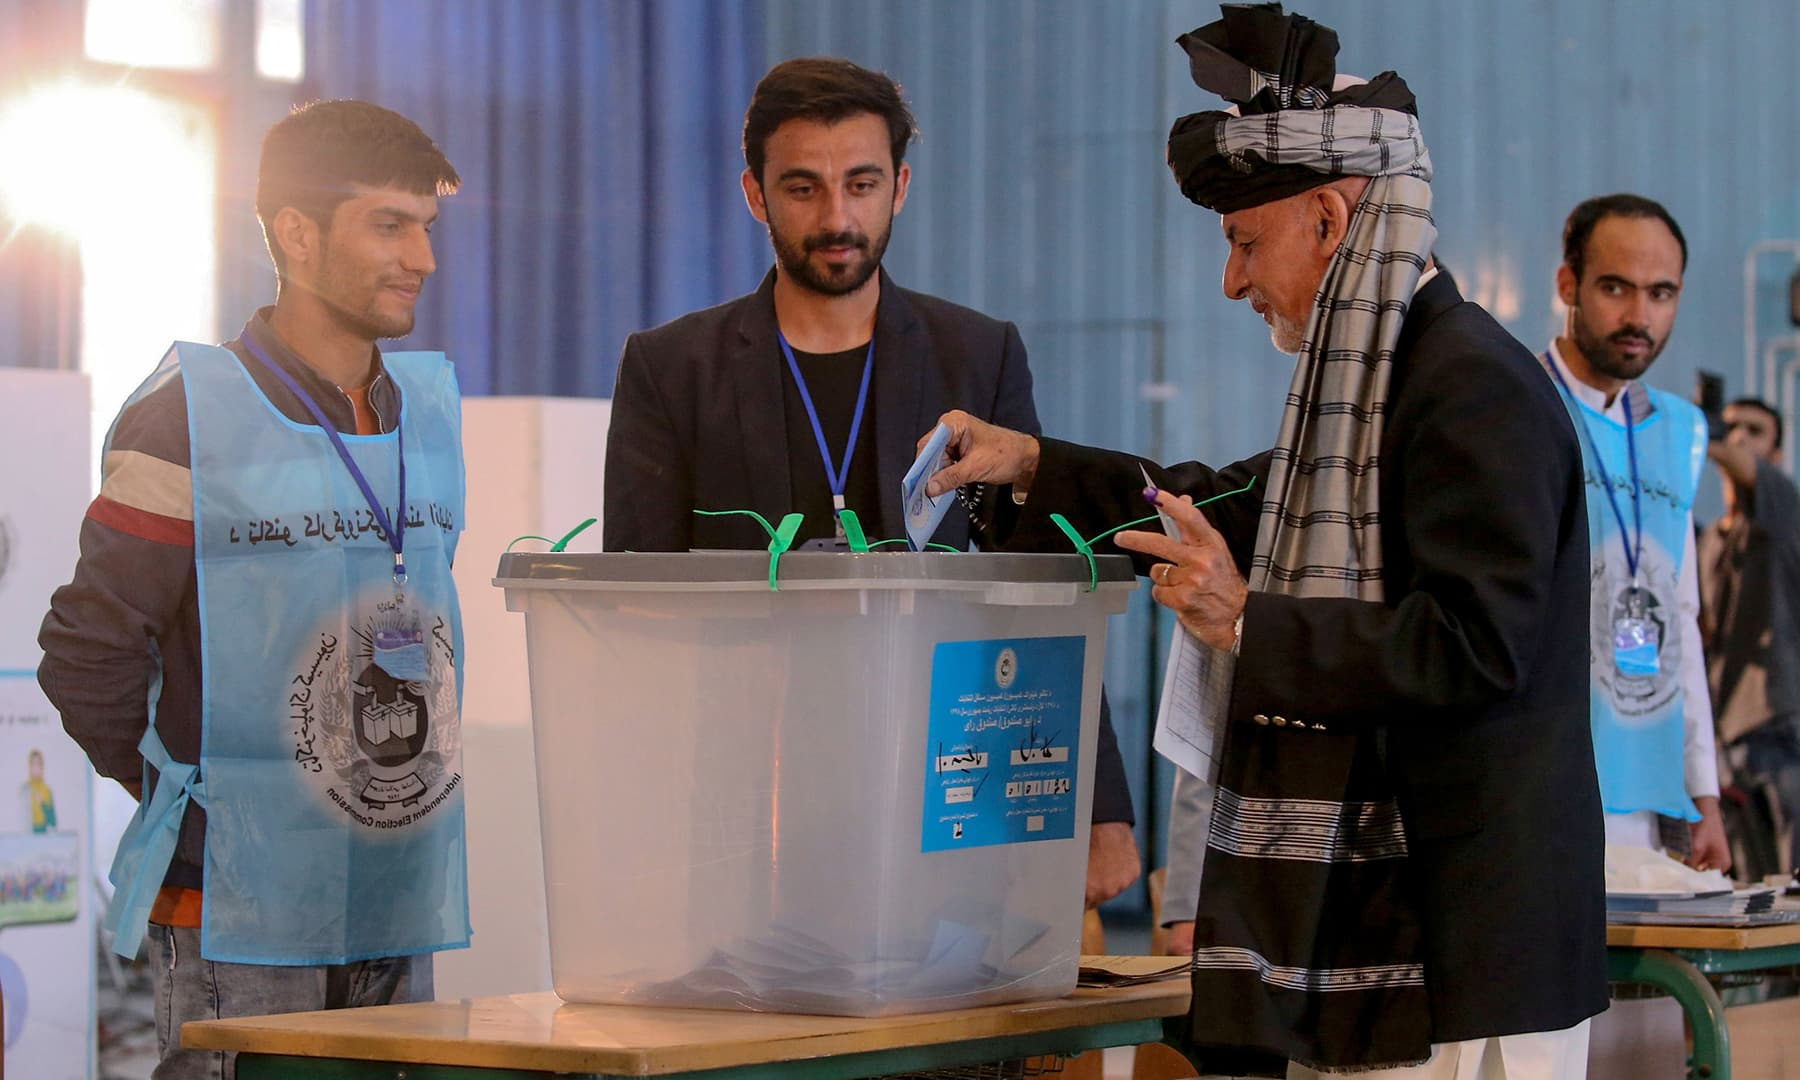 In this handout photograph taken and released by Press Office of President of Afghanistan, Afghan President and candidate Ashraf Ghani casts his vote at a polling station in Kabul. — AFP